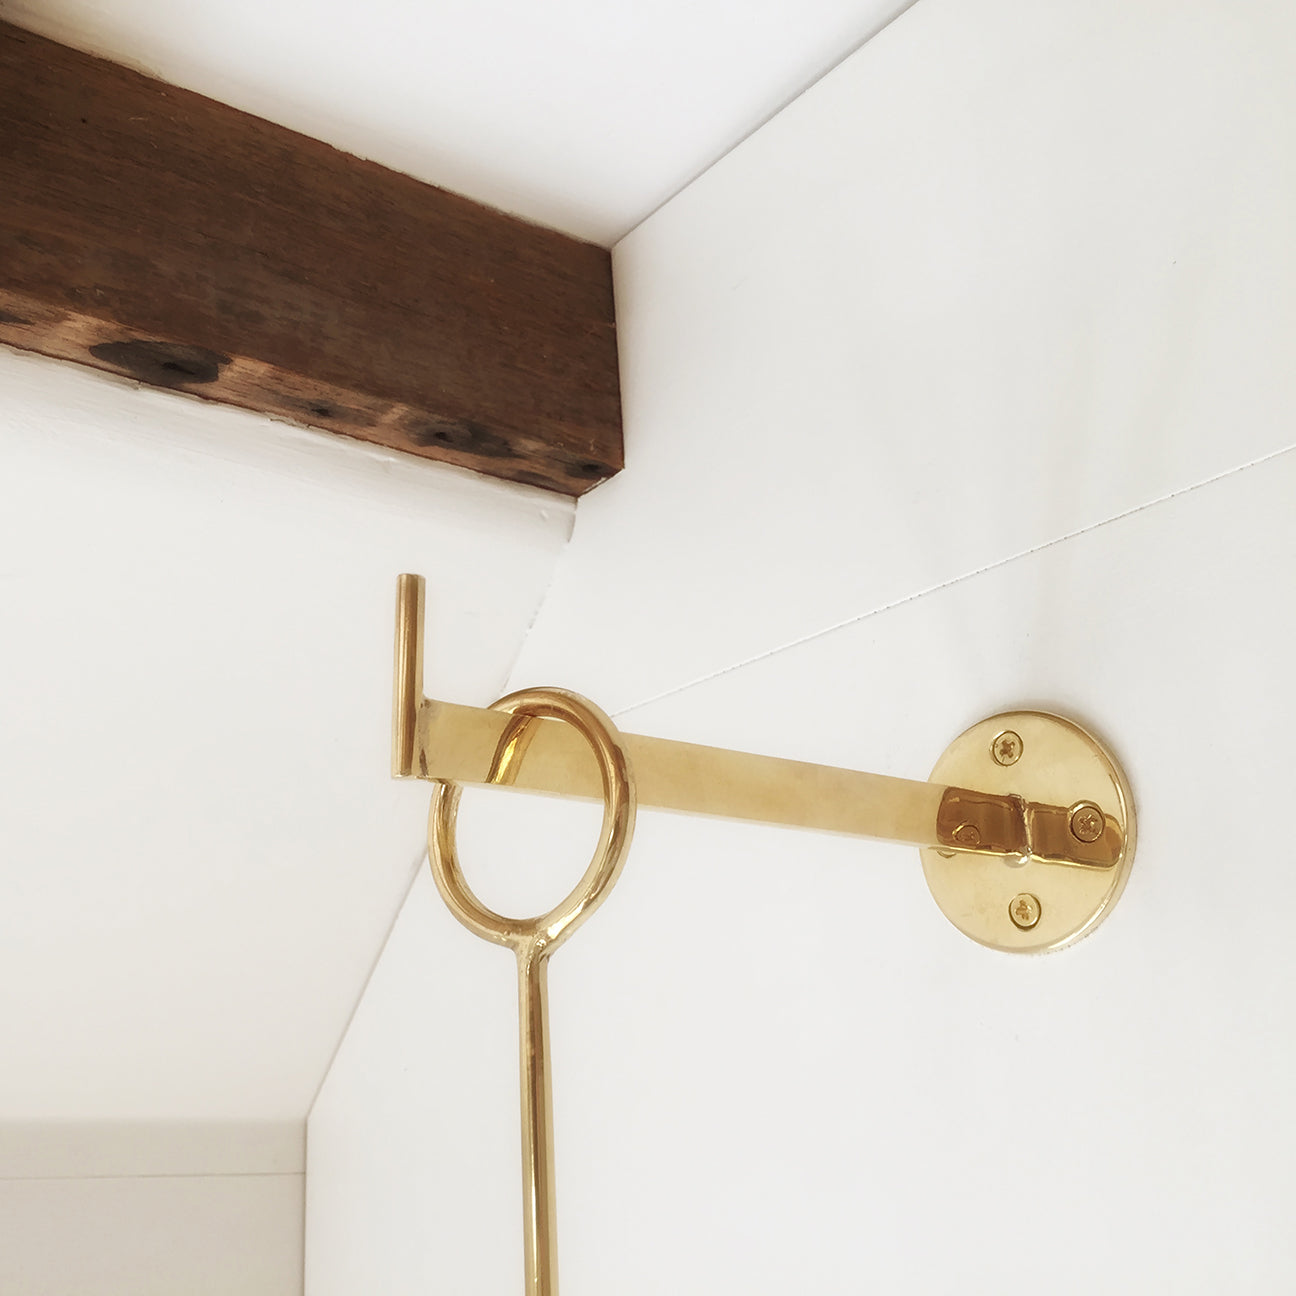 M+A NYC Wall Mounting Hook Polished Brass